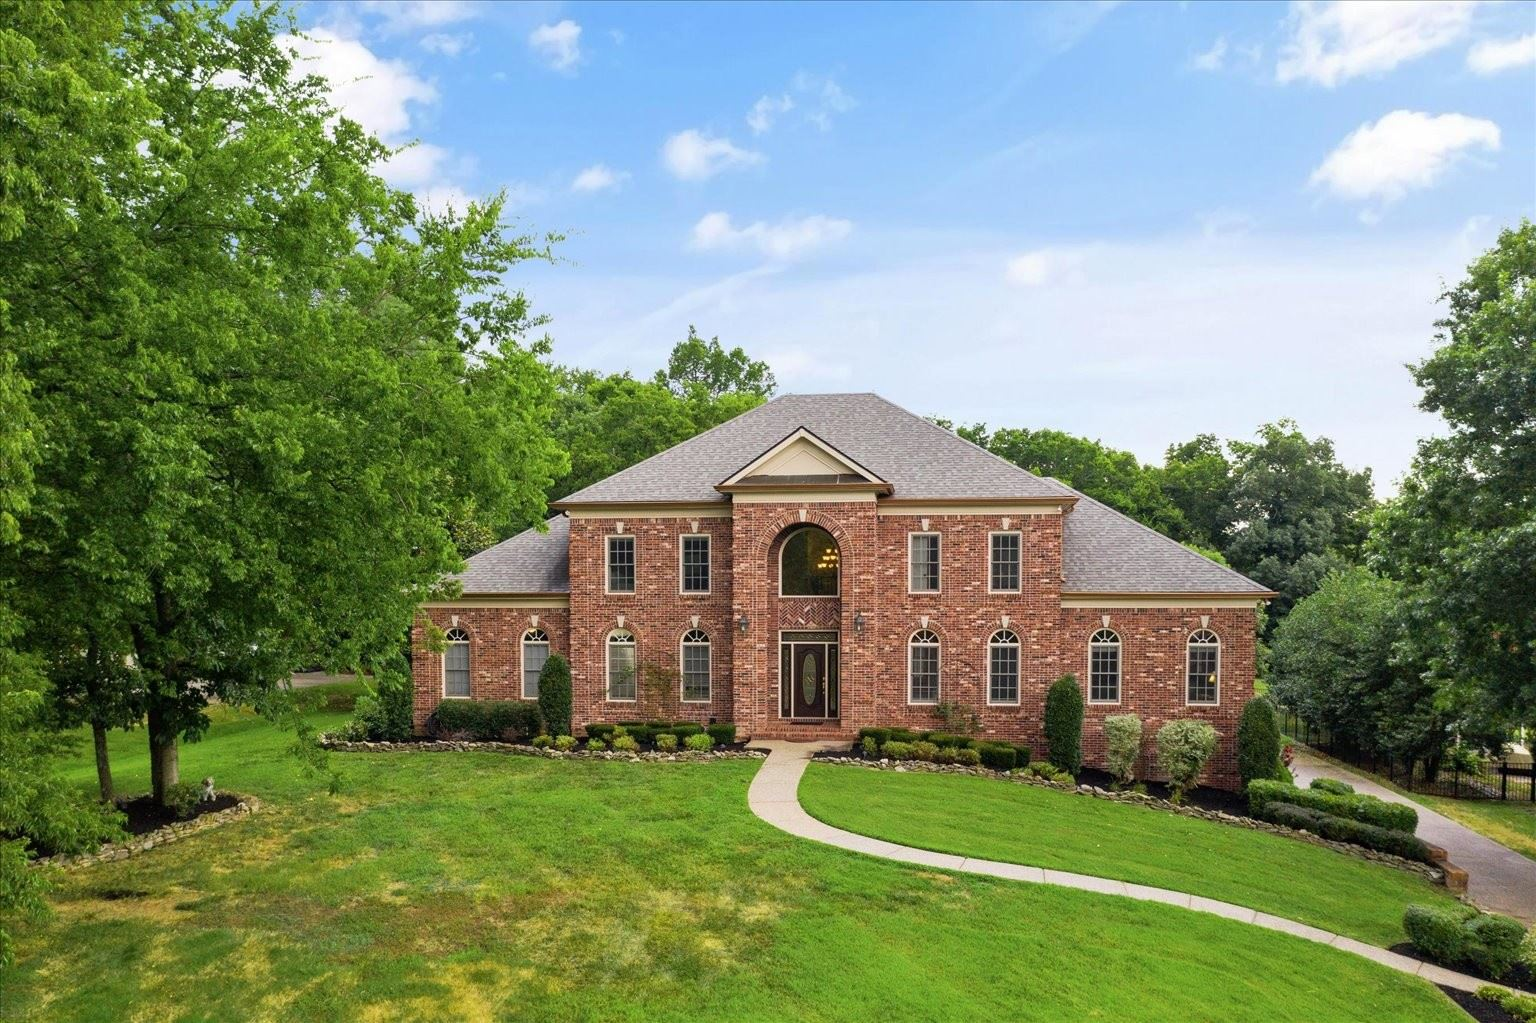 Photo of 353 Lake Valley Dr, Franklin, TN 37069 (MLS # 2274241)